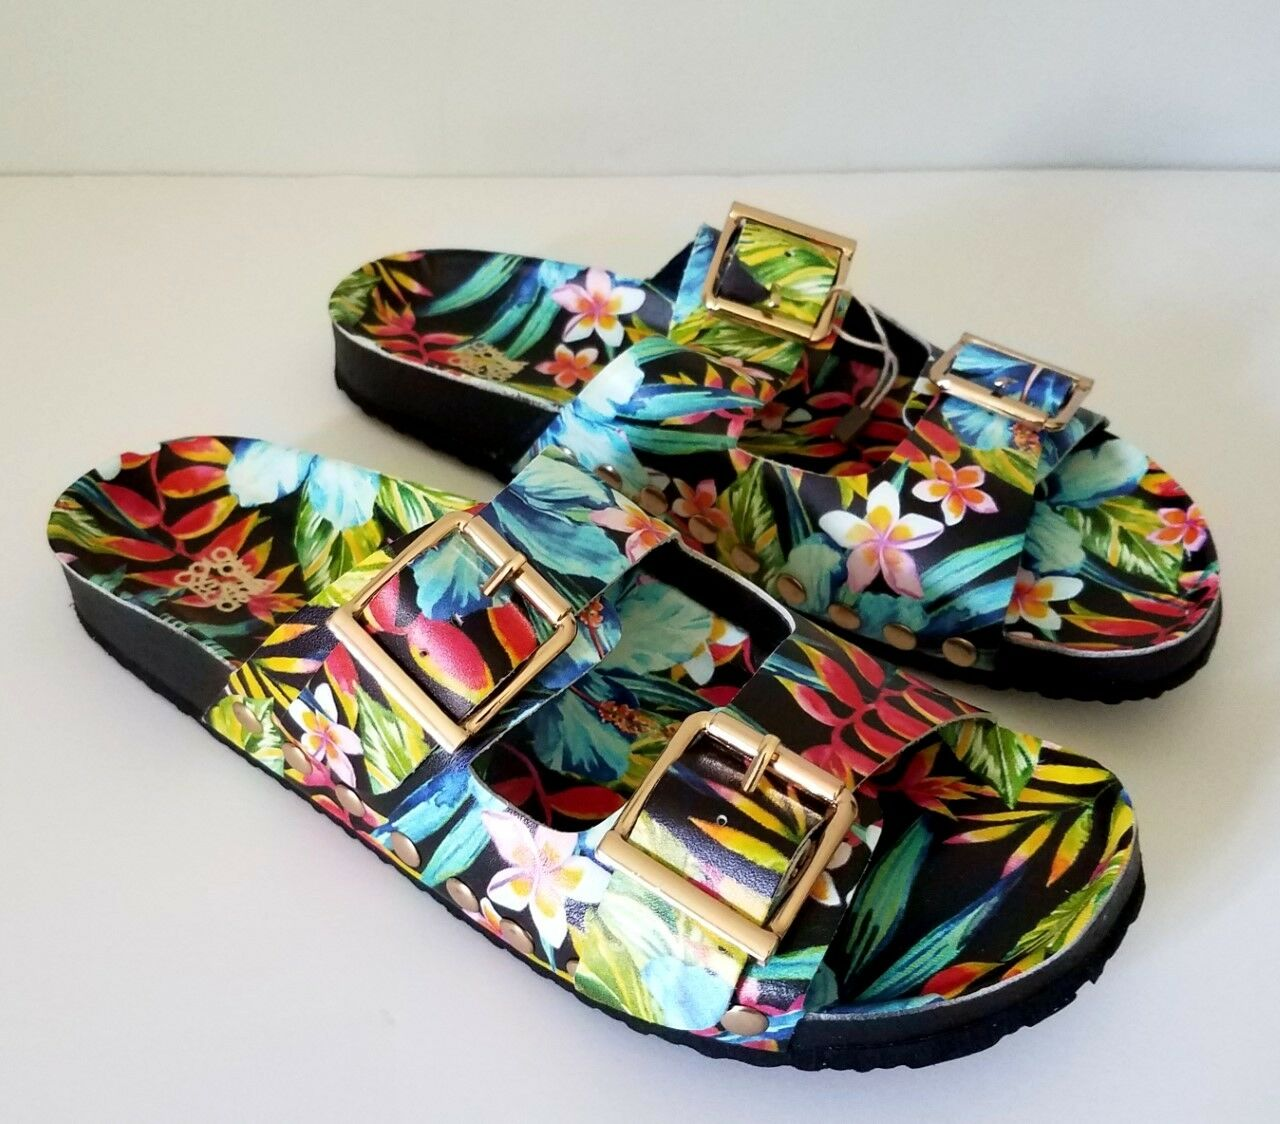 NEW COLORS OF CALIFORNIA TROPICAL FLORAL FOOTBED SANDALS SZ 39